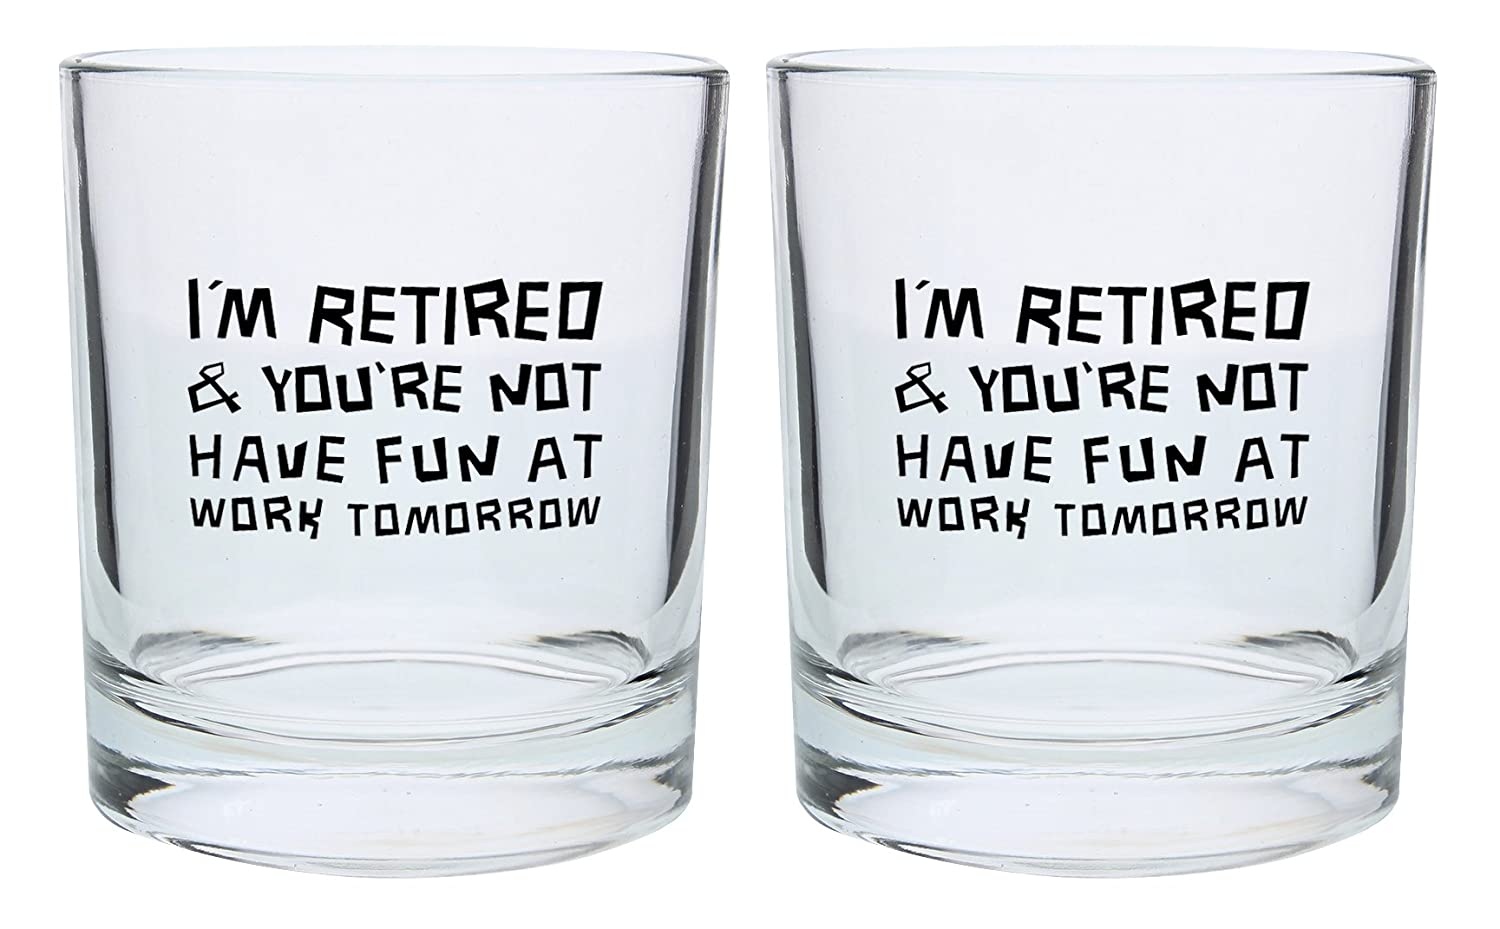 Retirement Gifts for Women or Men I'm Retired You're Not Have Fun at Work Tomorrow Funny Retirement Gift Set Gift Lowball Glasses 2-Pack Round Lowball Tumbler Set Black A-P-PD-9RHBG-0010-02-Blk